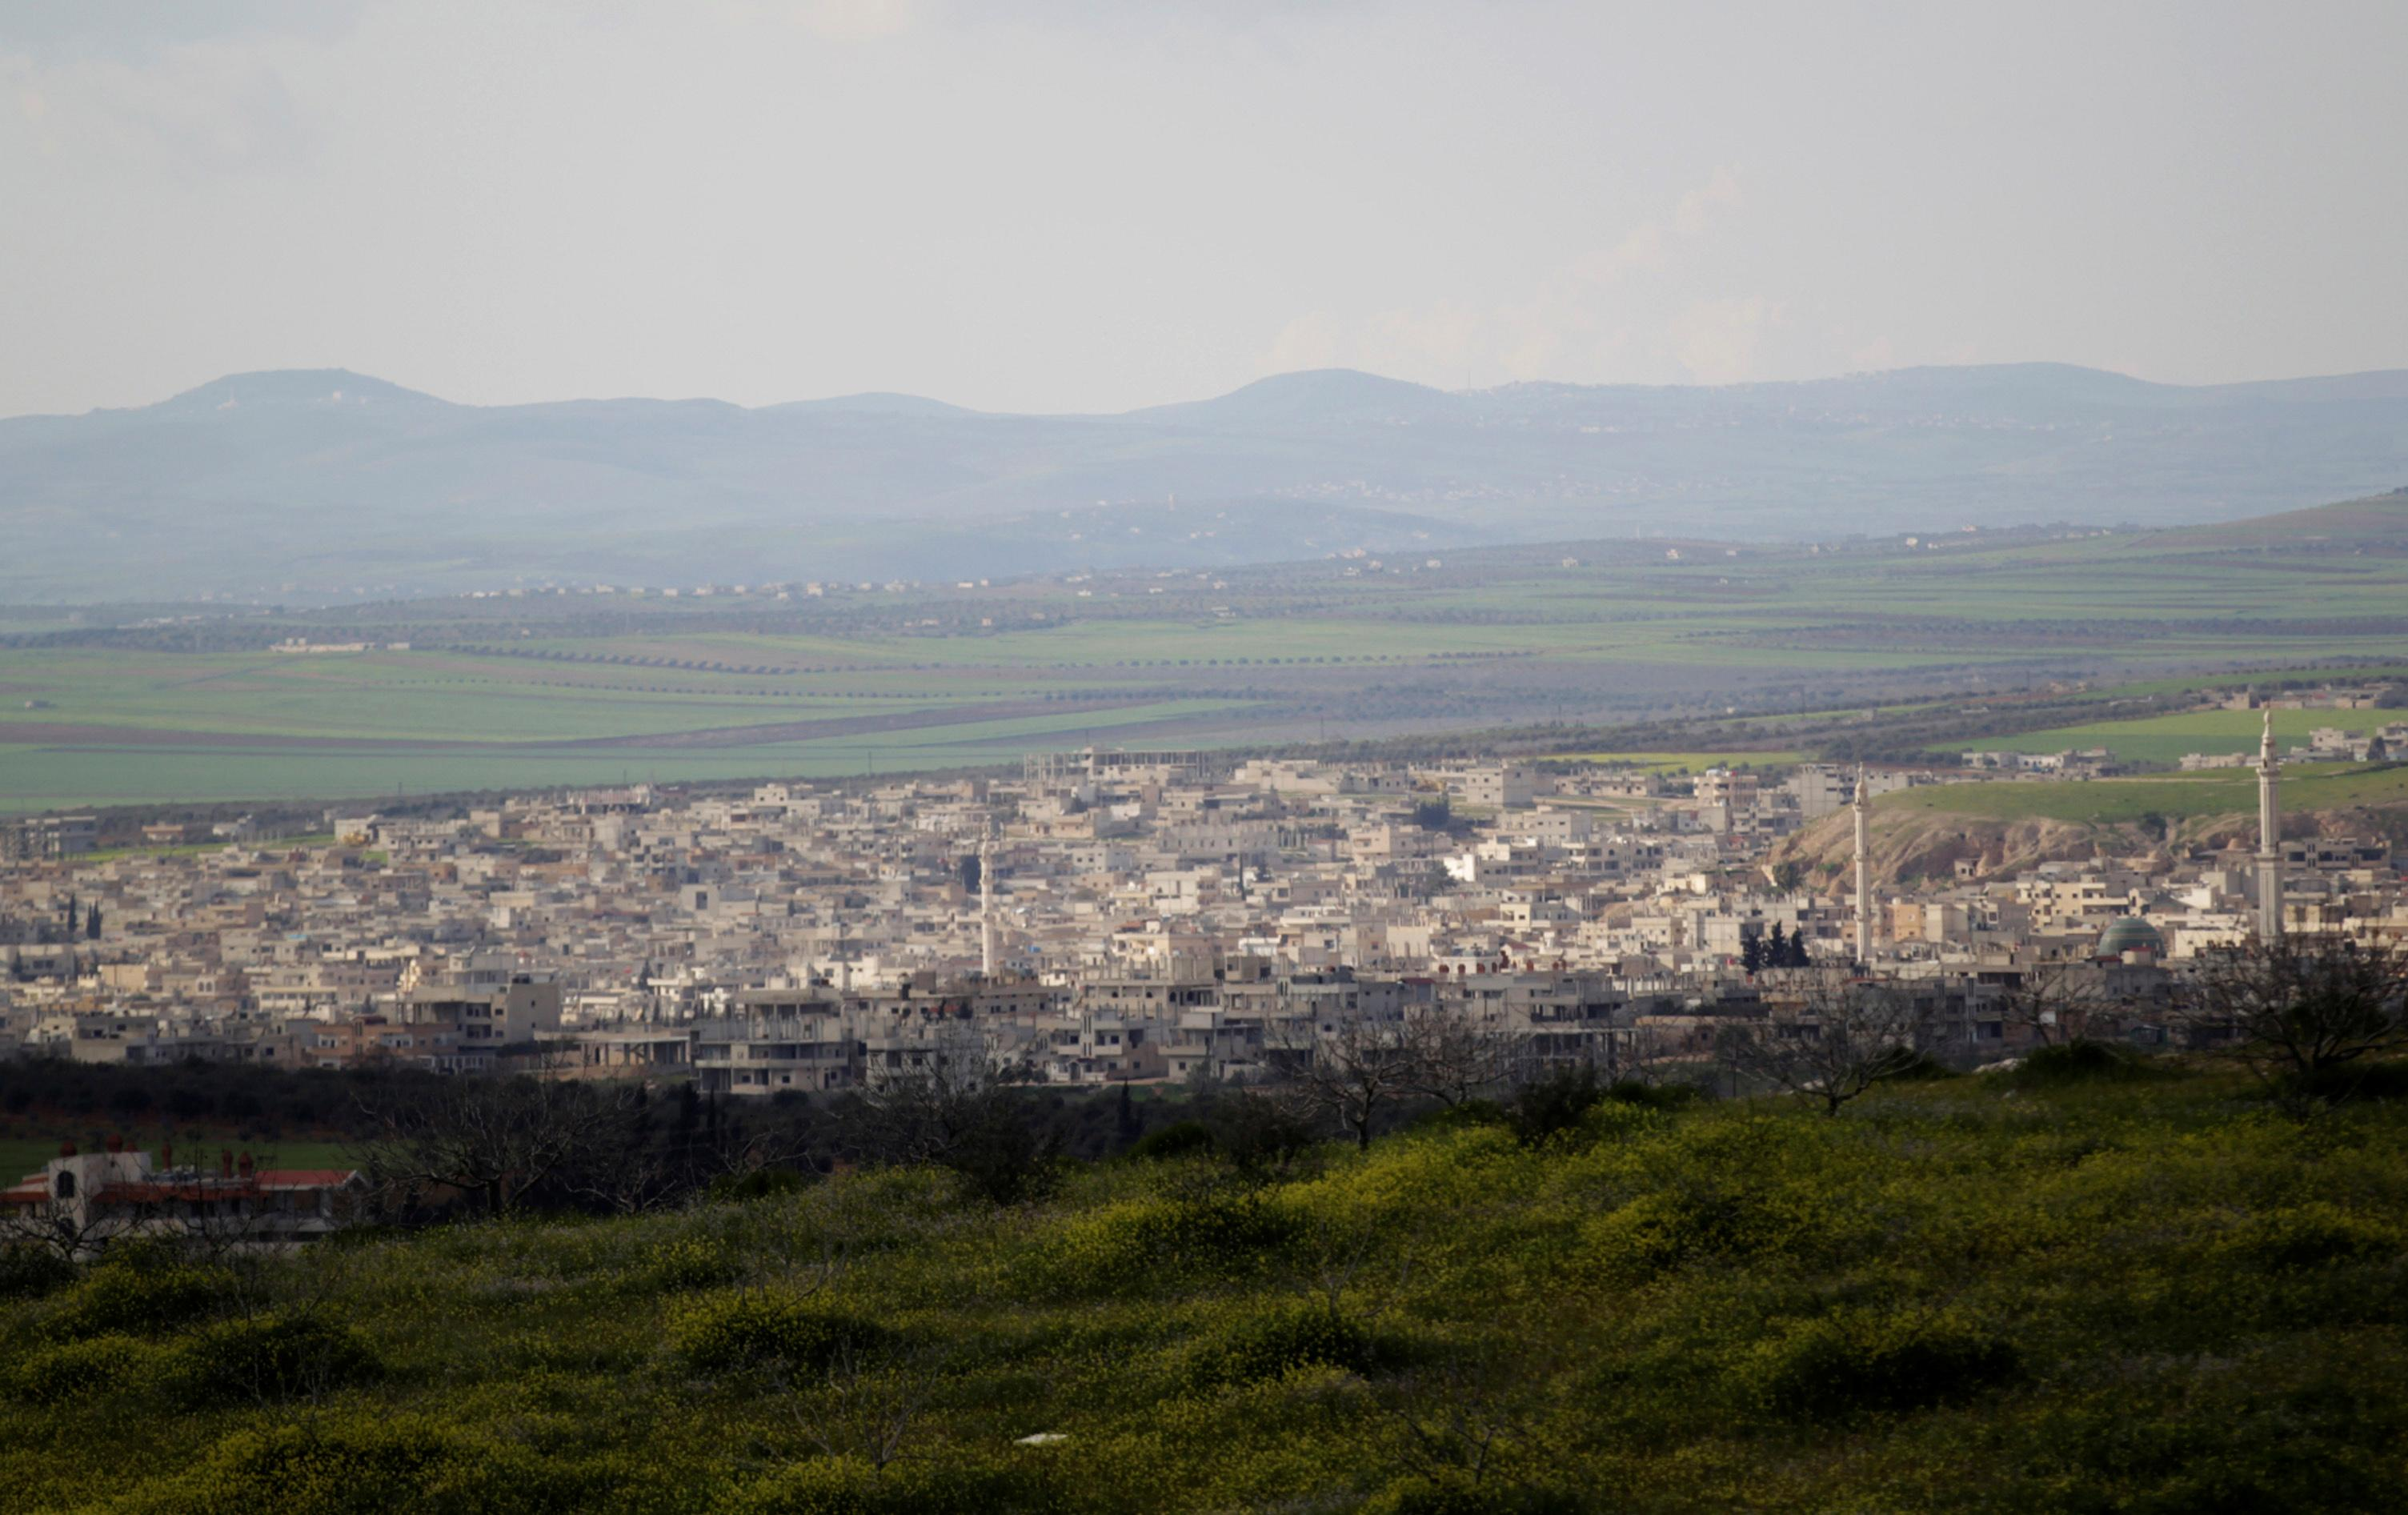 Syrian army poised to take key town after rebel withdrawals